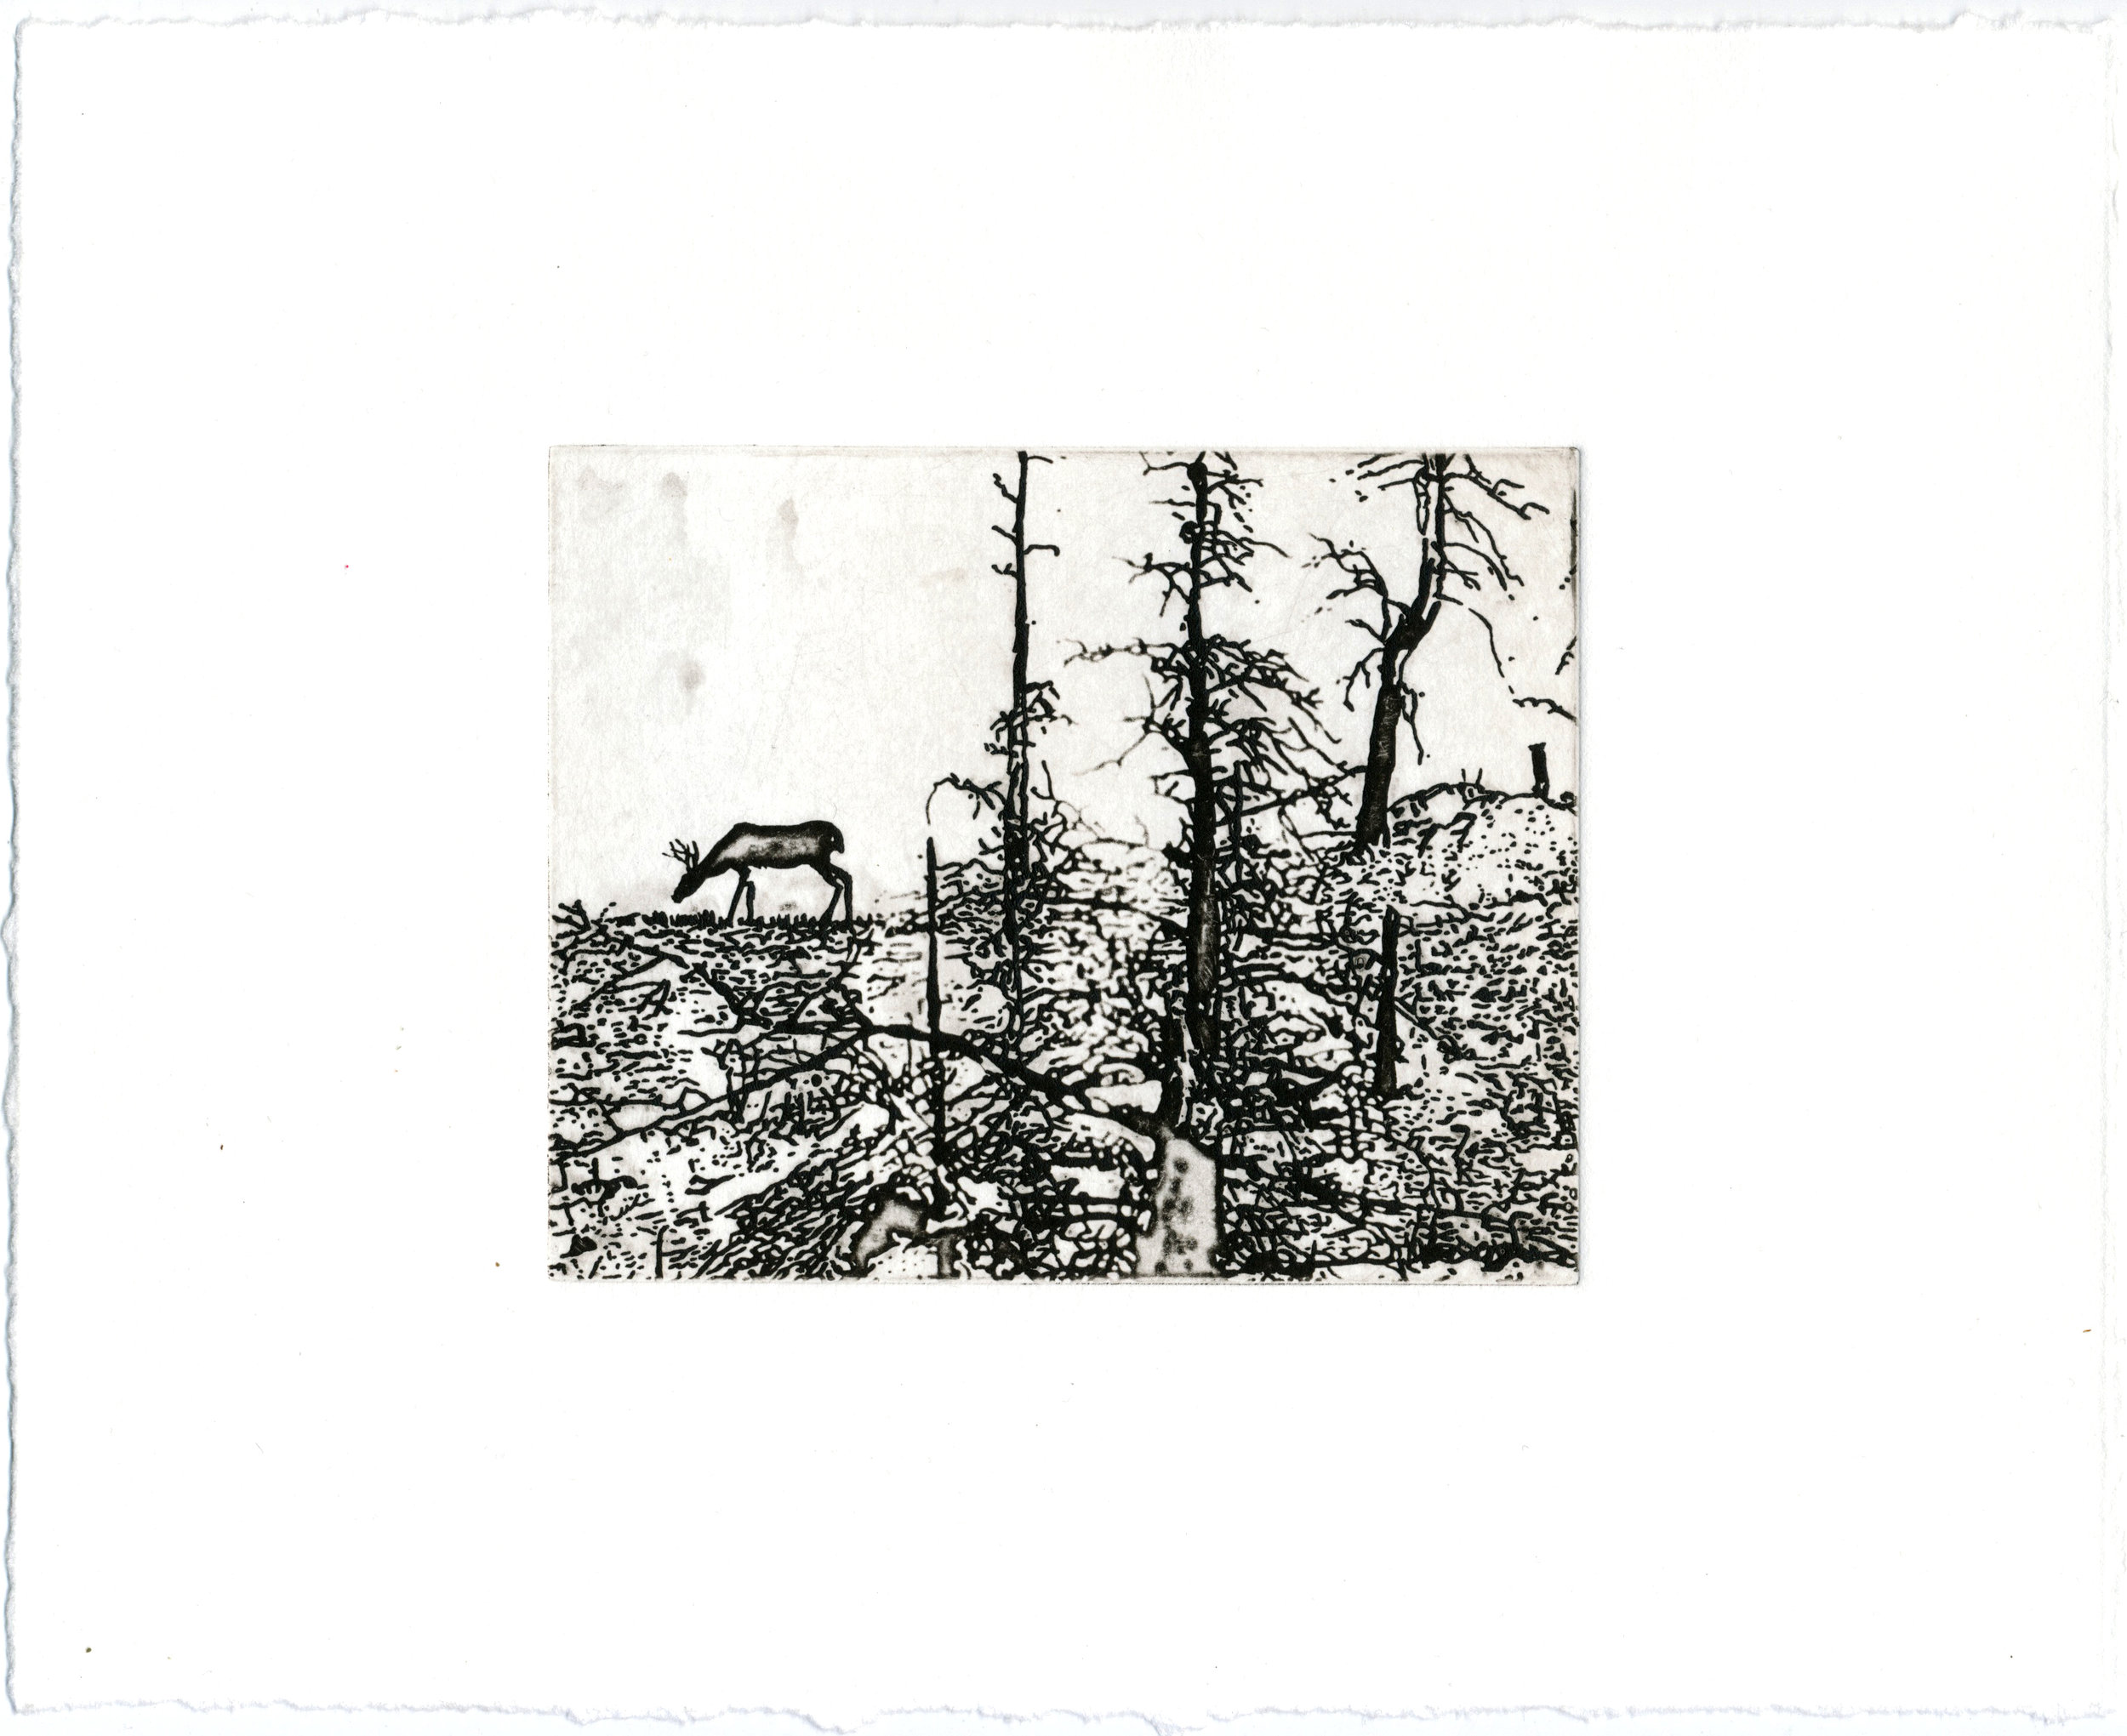 "Charcoal Remnants, 9.5 x 11.5,"" solarplate etching"